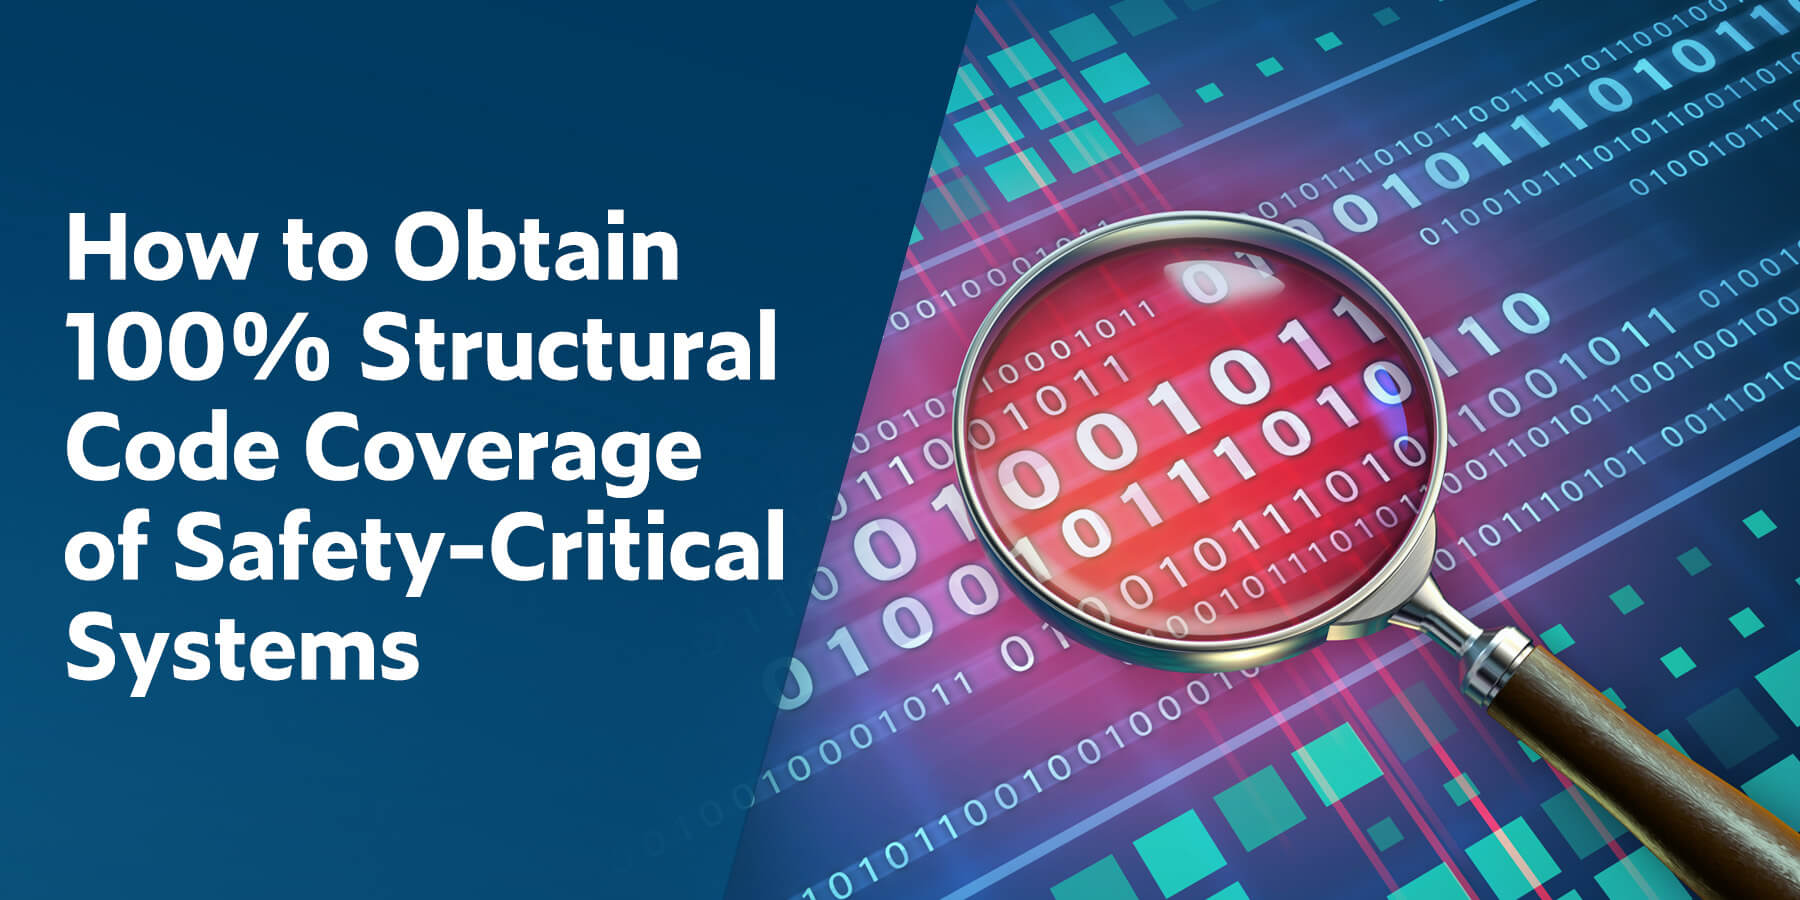 How to Obtain 100% Structural Code Coverage of Safety-Critical Systems